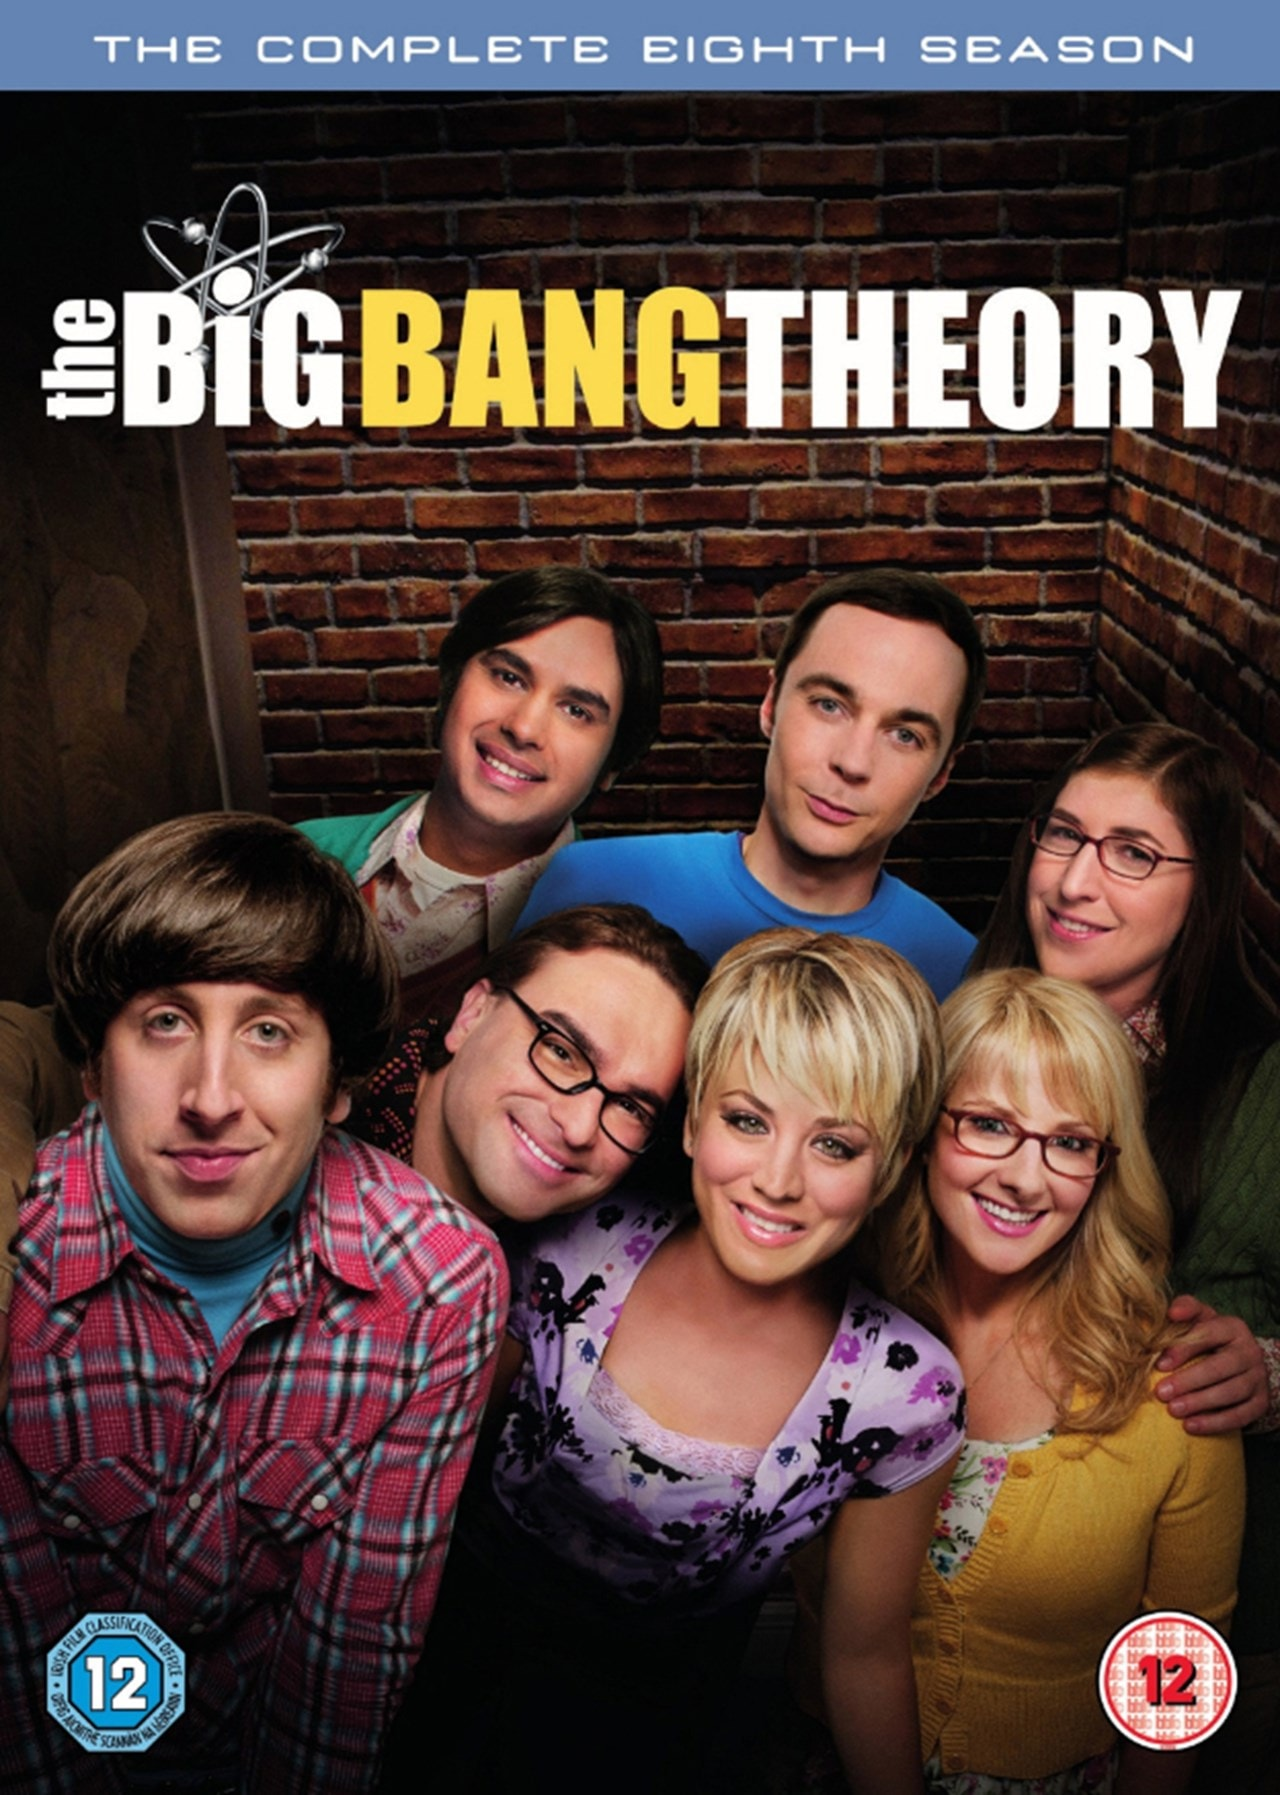 The Big Bang Theory: The Complete Eighth Season - 1